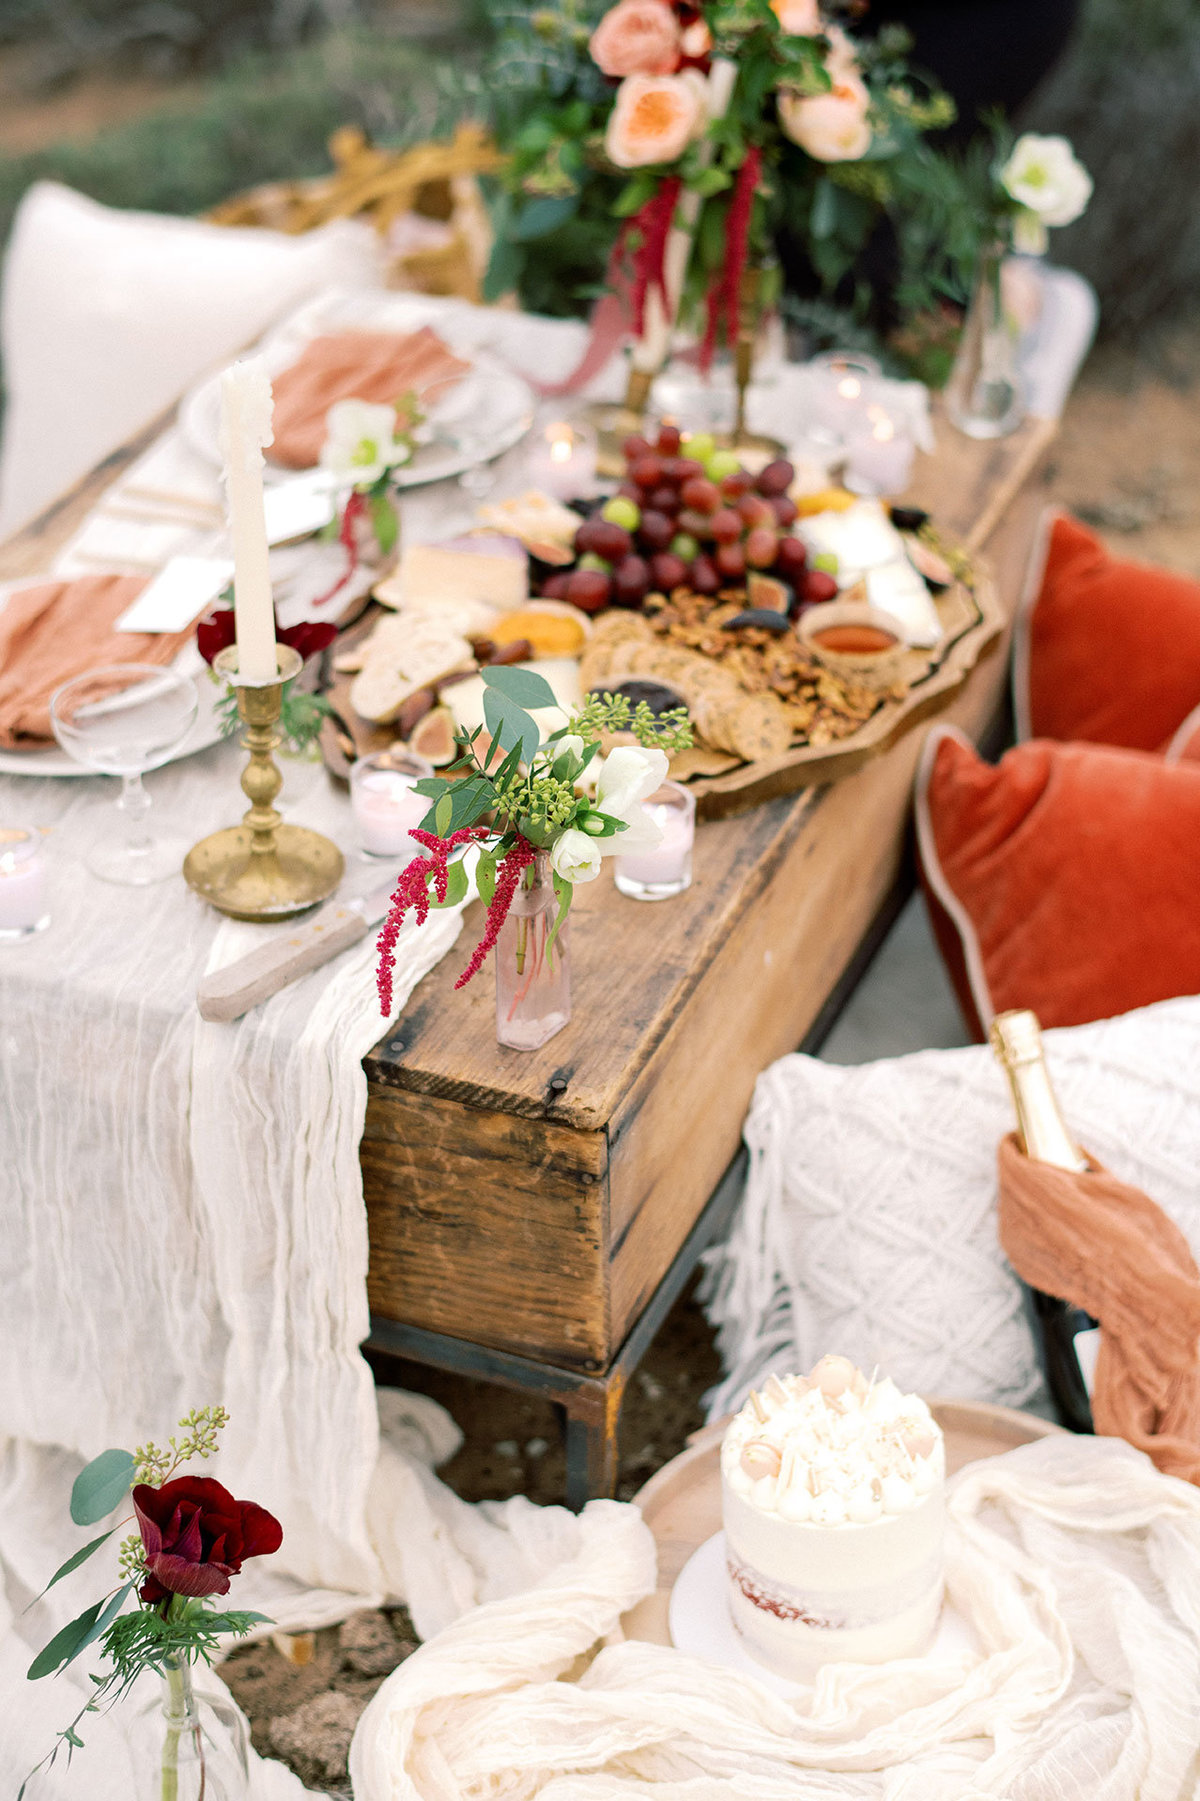 Montana-de-Oro-Elopement-styled-by-San-Luis-Obispo-Wedding-Planner-Embark-Event-Design-15